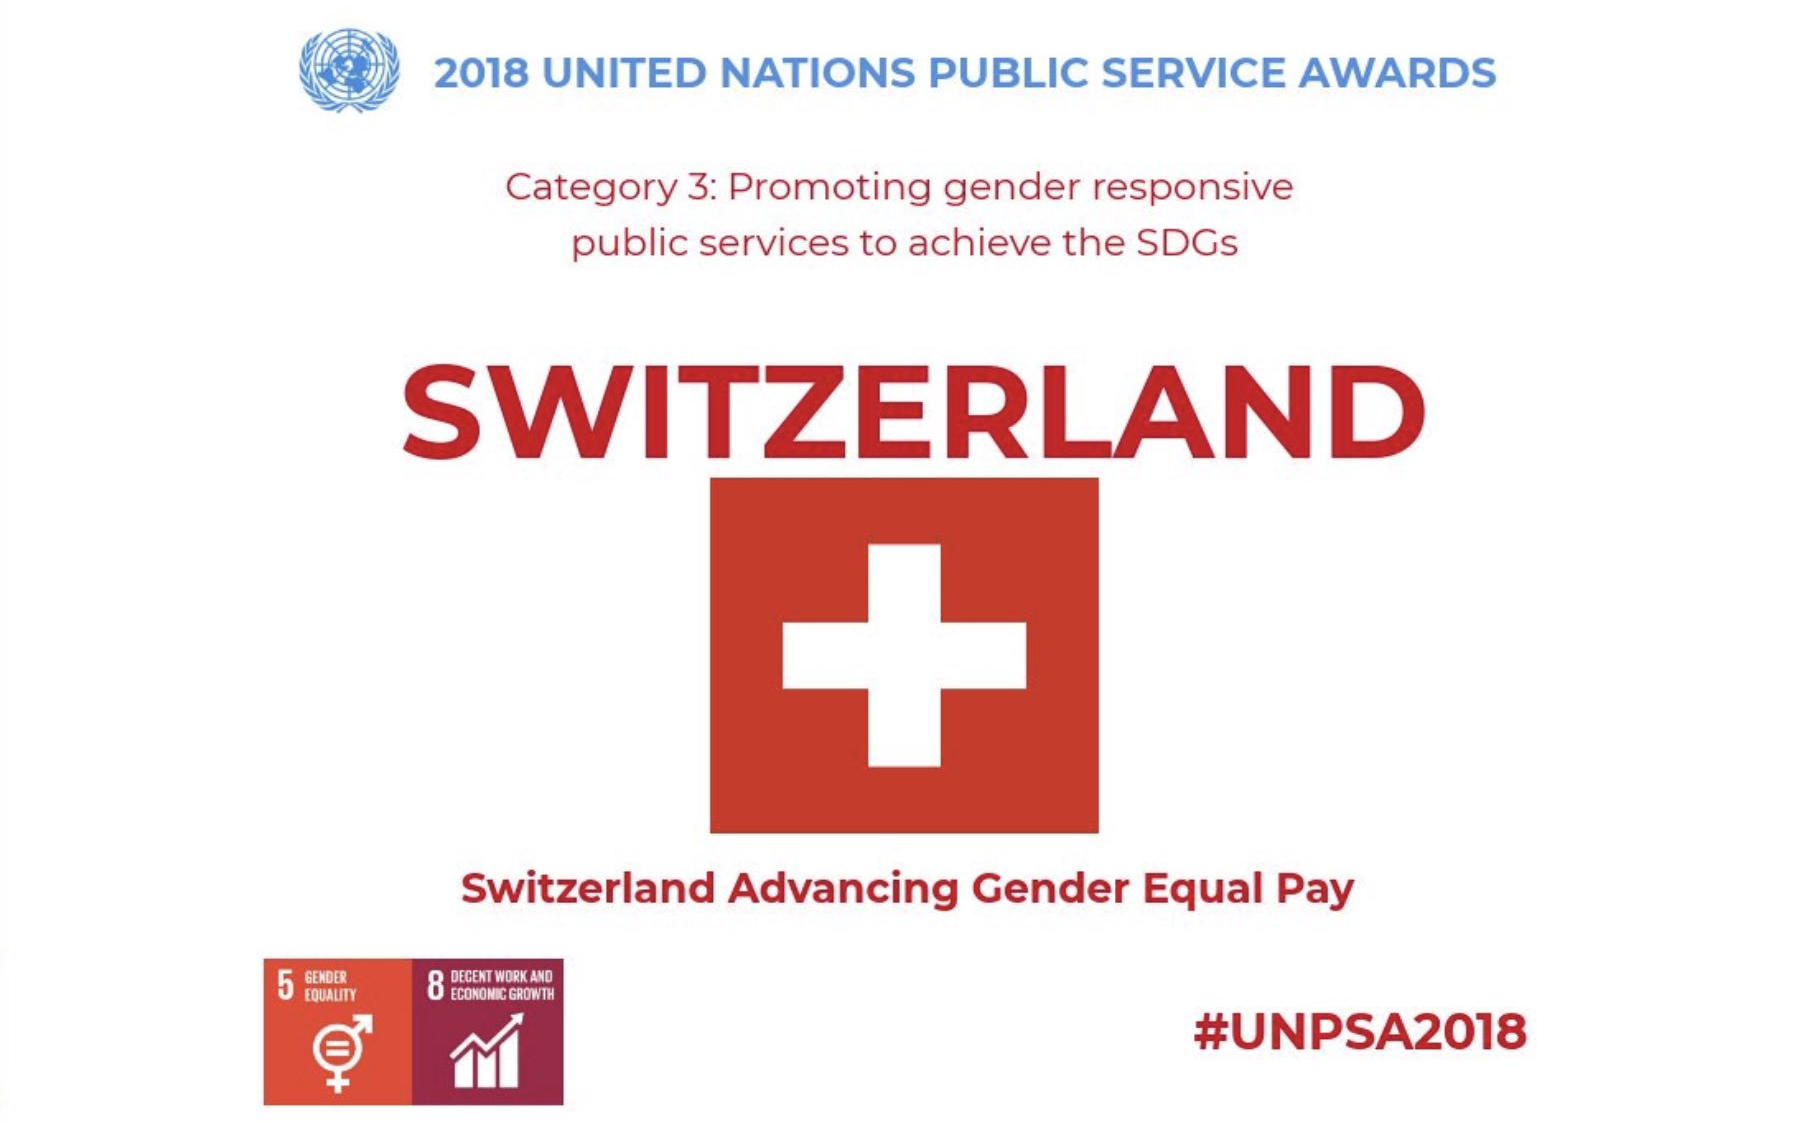 United Nations Public Service Award 2018